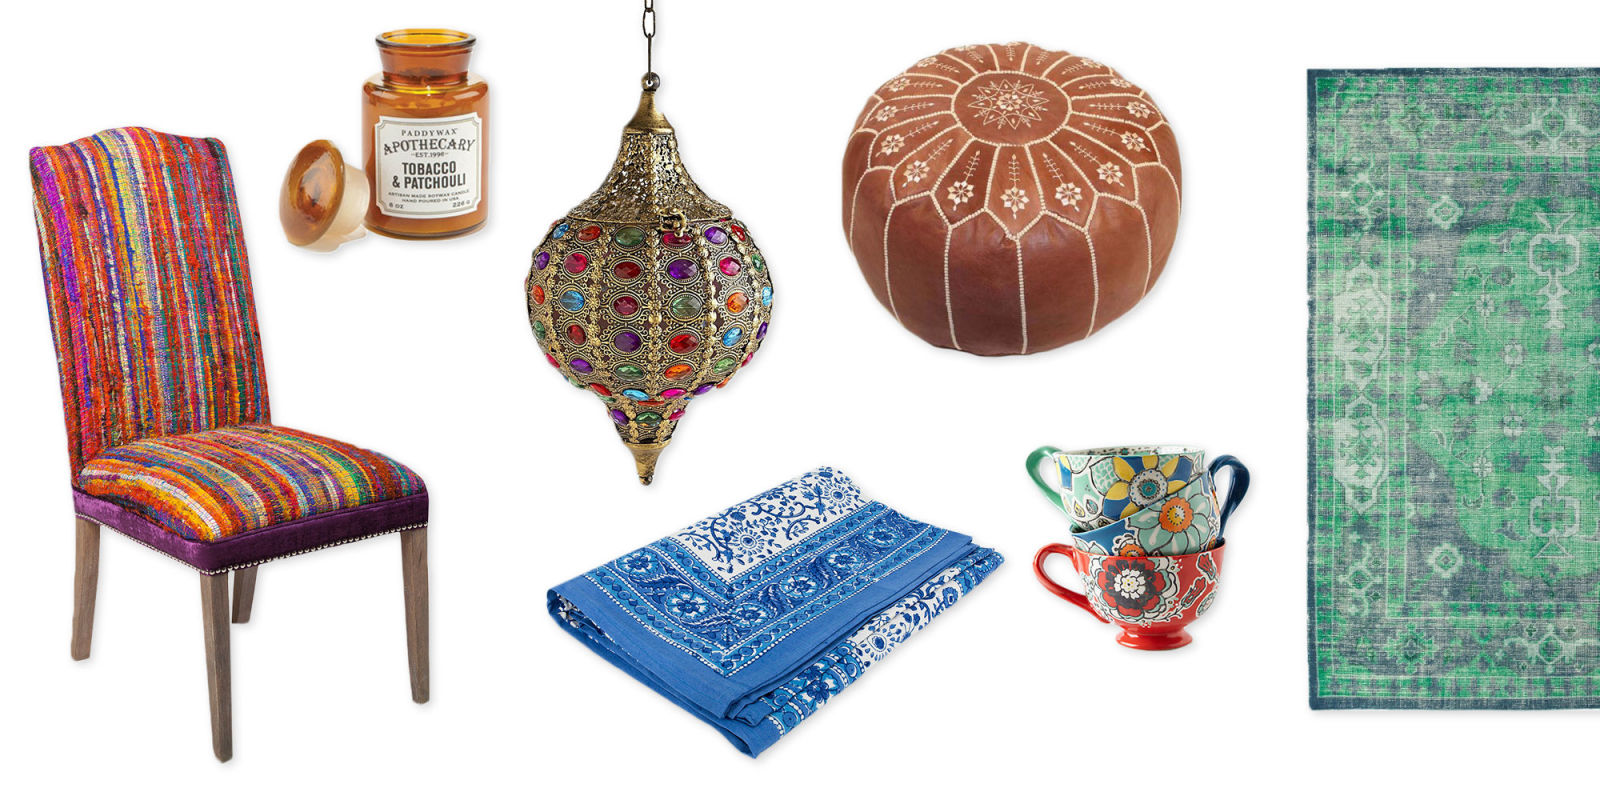 15 best bohemian decor pieces in 2016 bohemian furniture and accessories